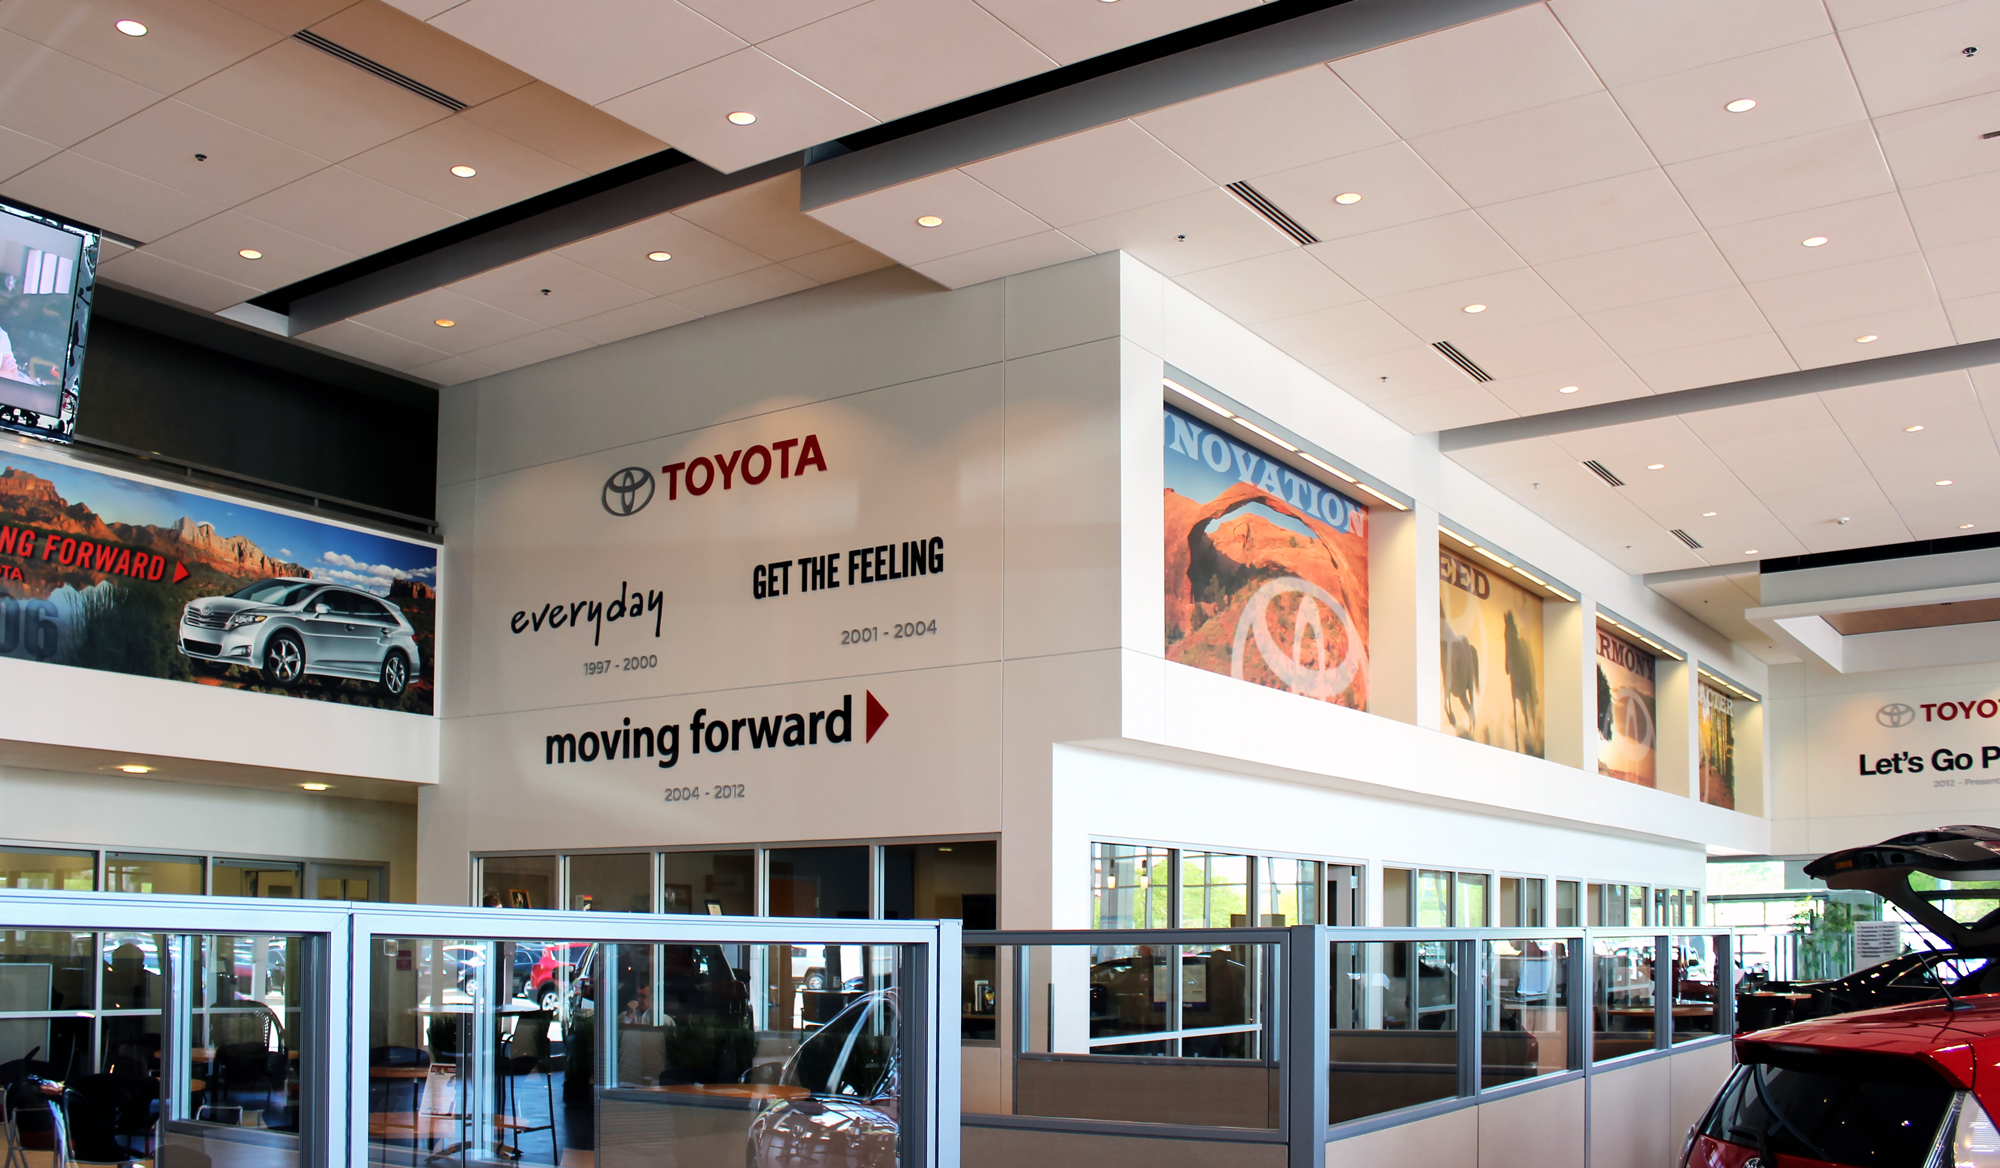 Toyota branded taglines reminds loyal customers of past slogans.